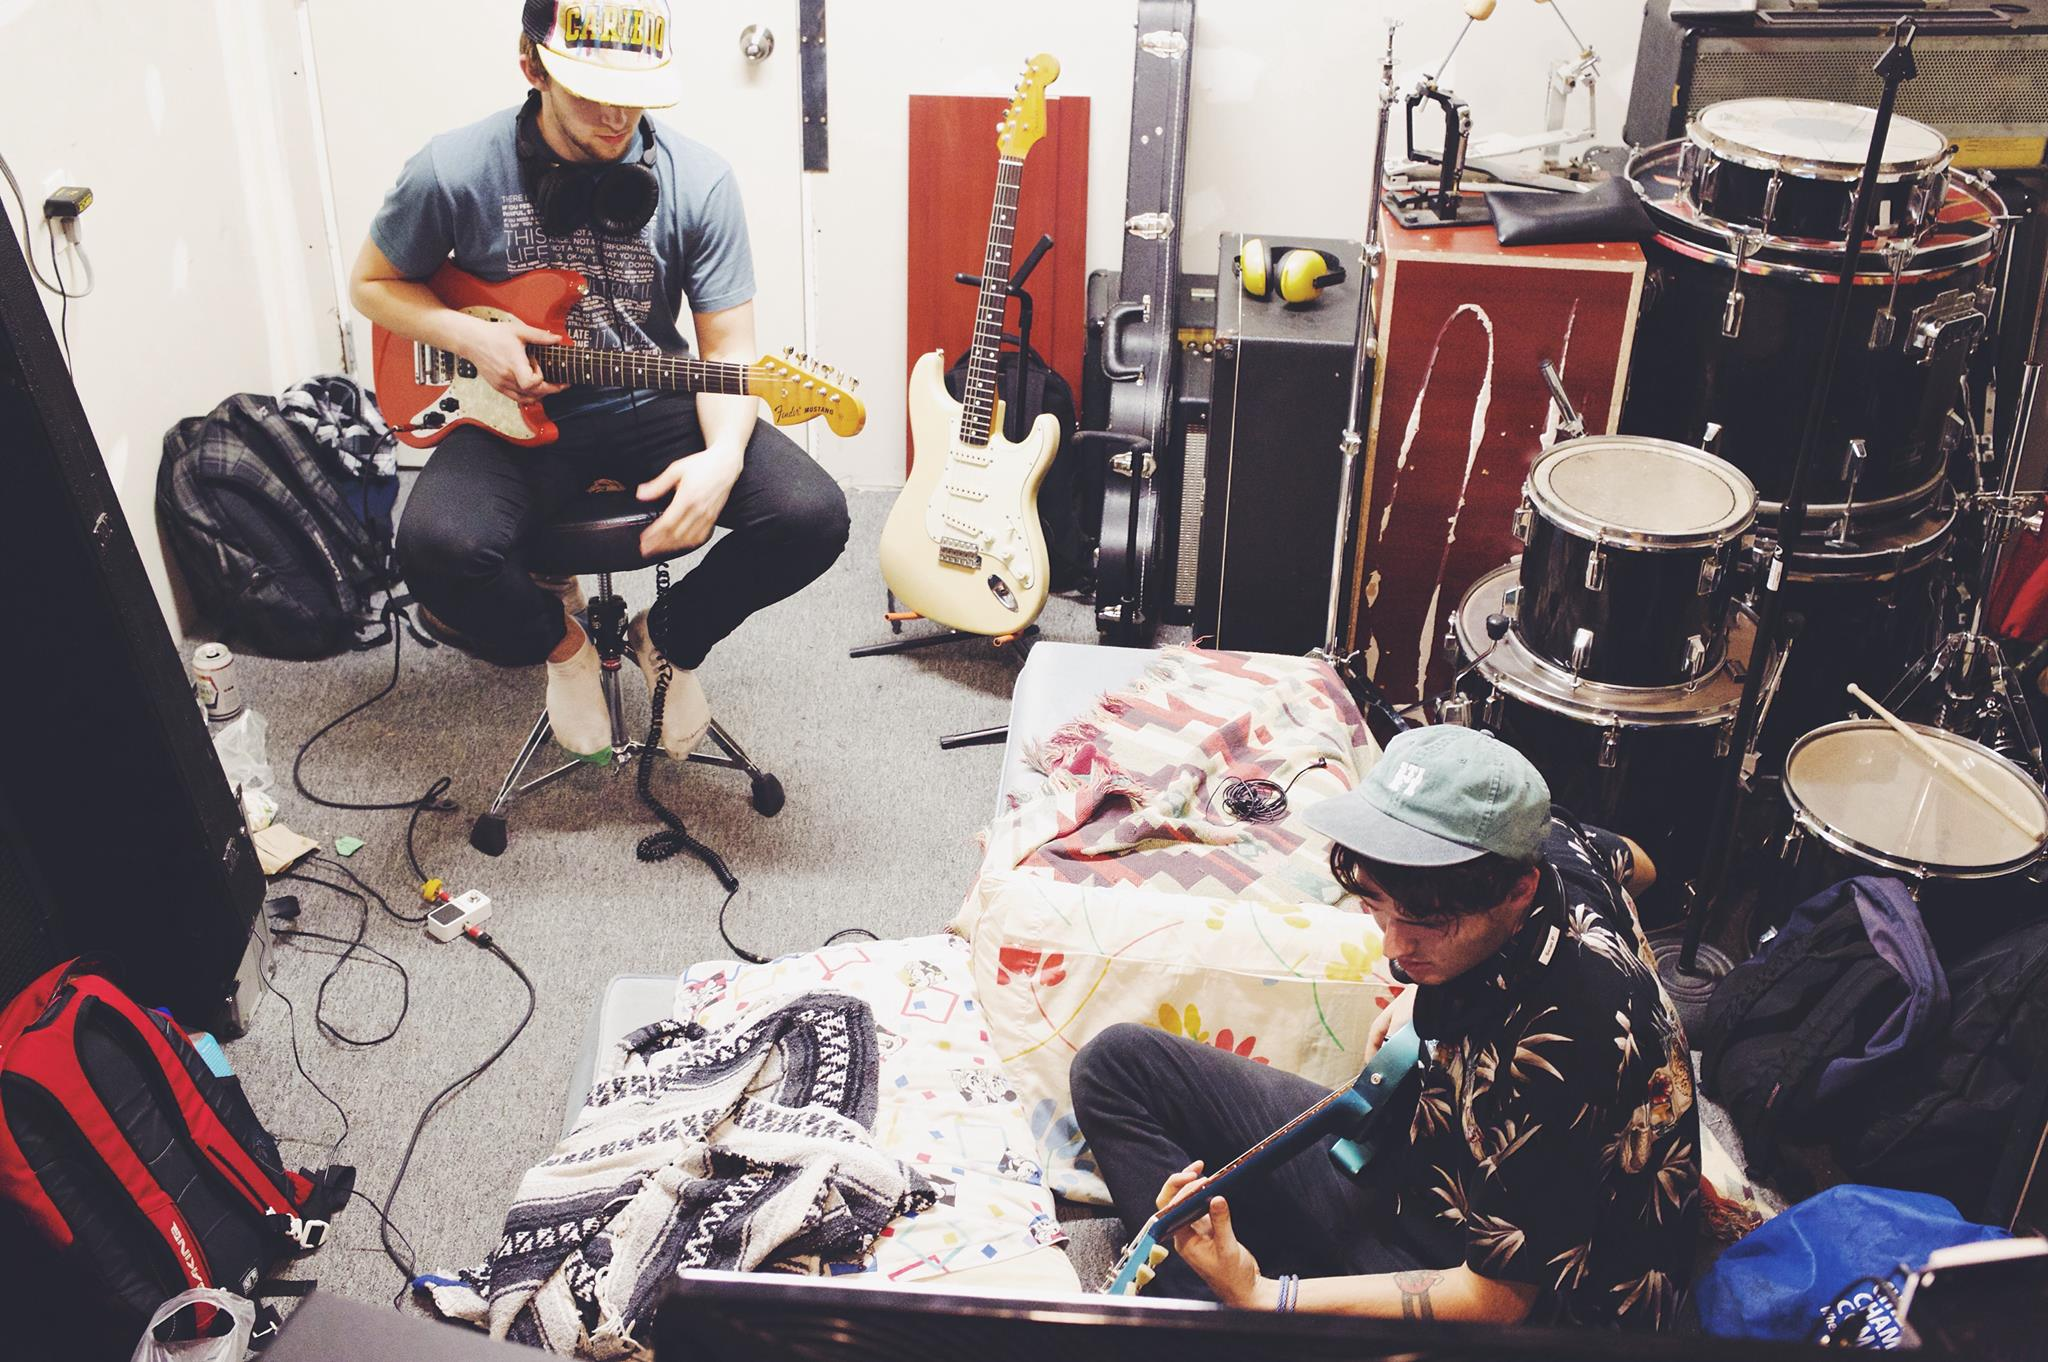 Guitars At Rough Session.jpg